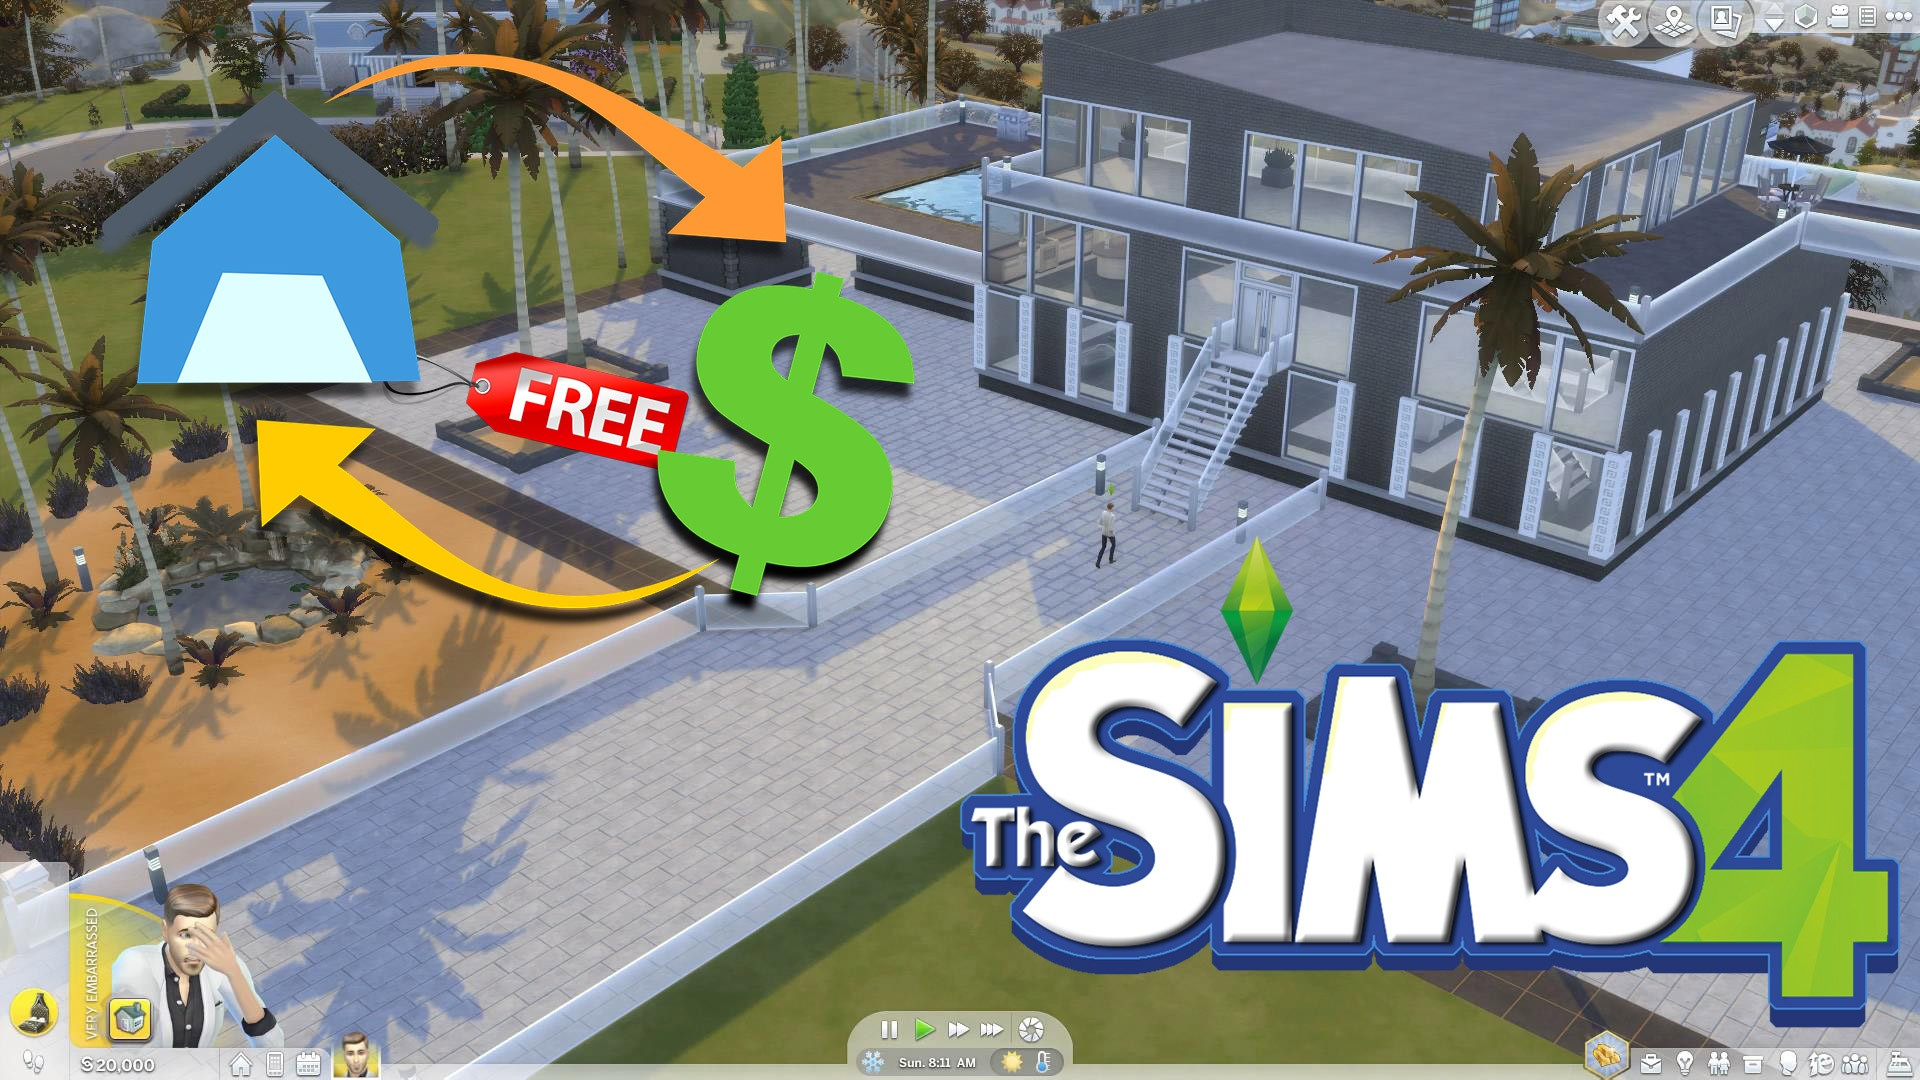 The Sims 4 Free Real Estate Cheat